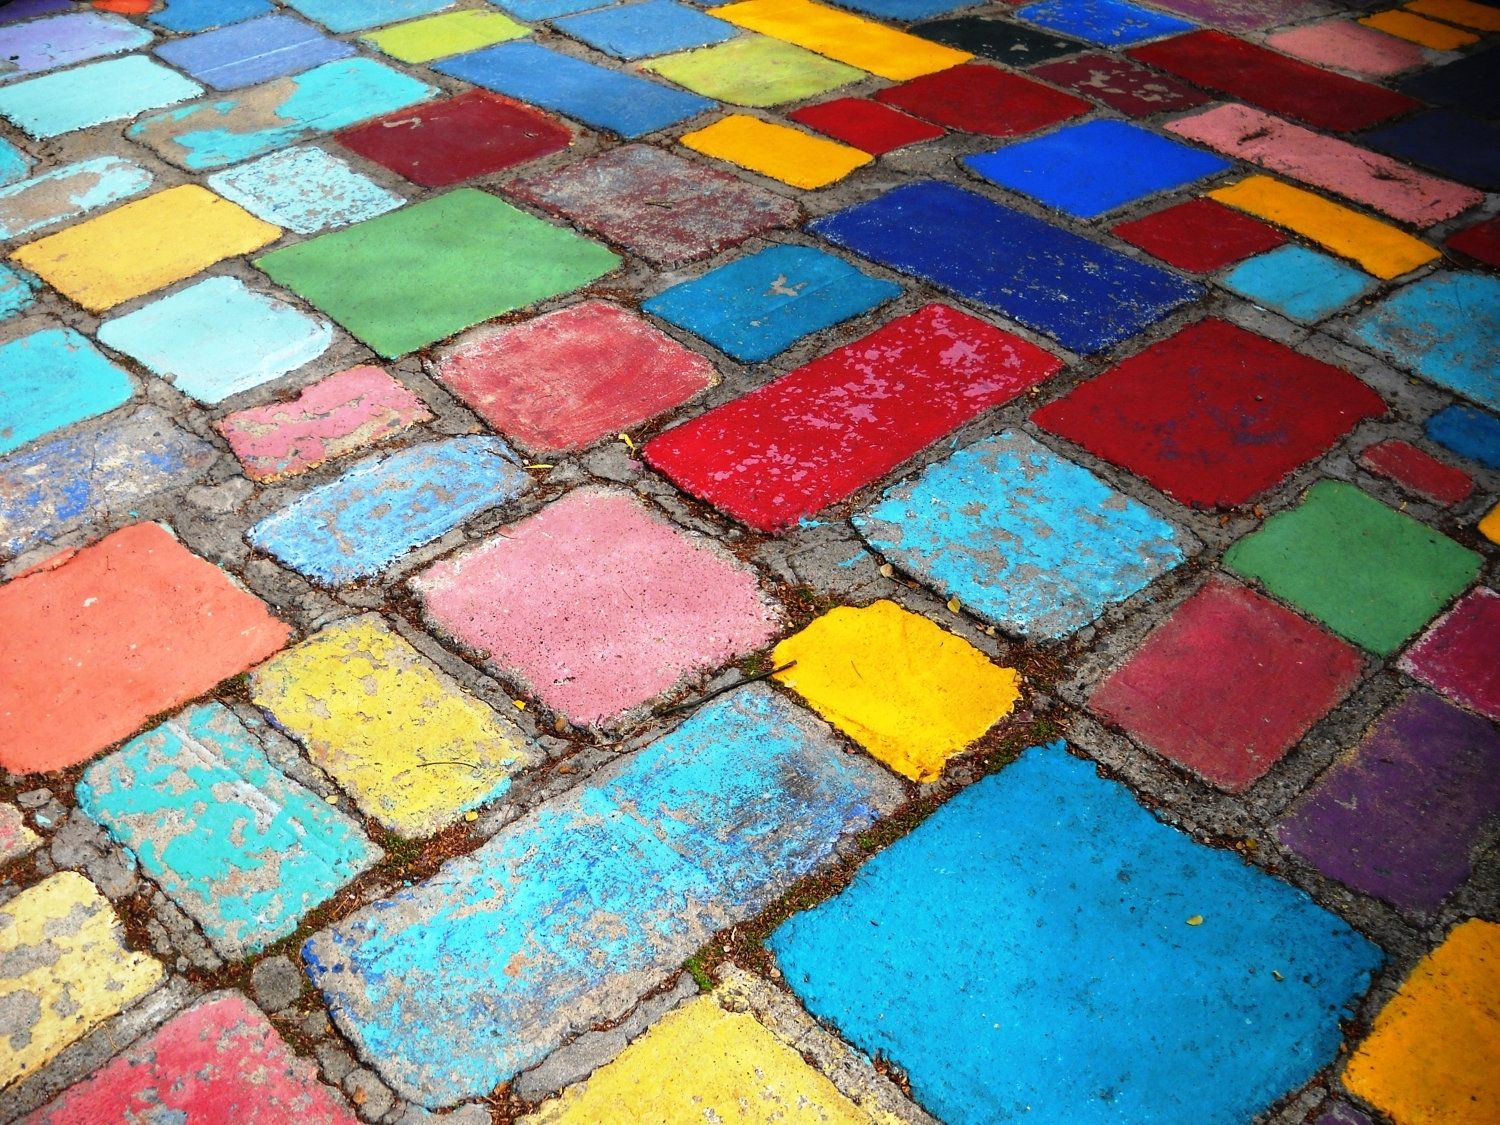 Hand Crafted Painted Spanish Tiles Blue Yellow And Red